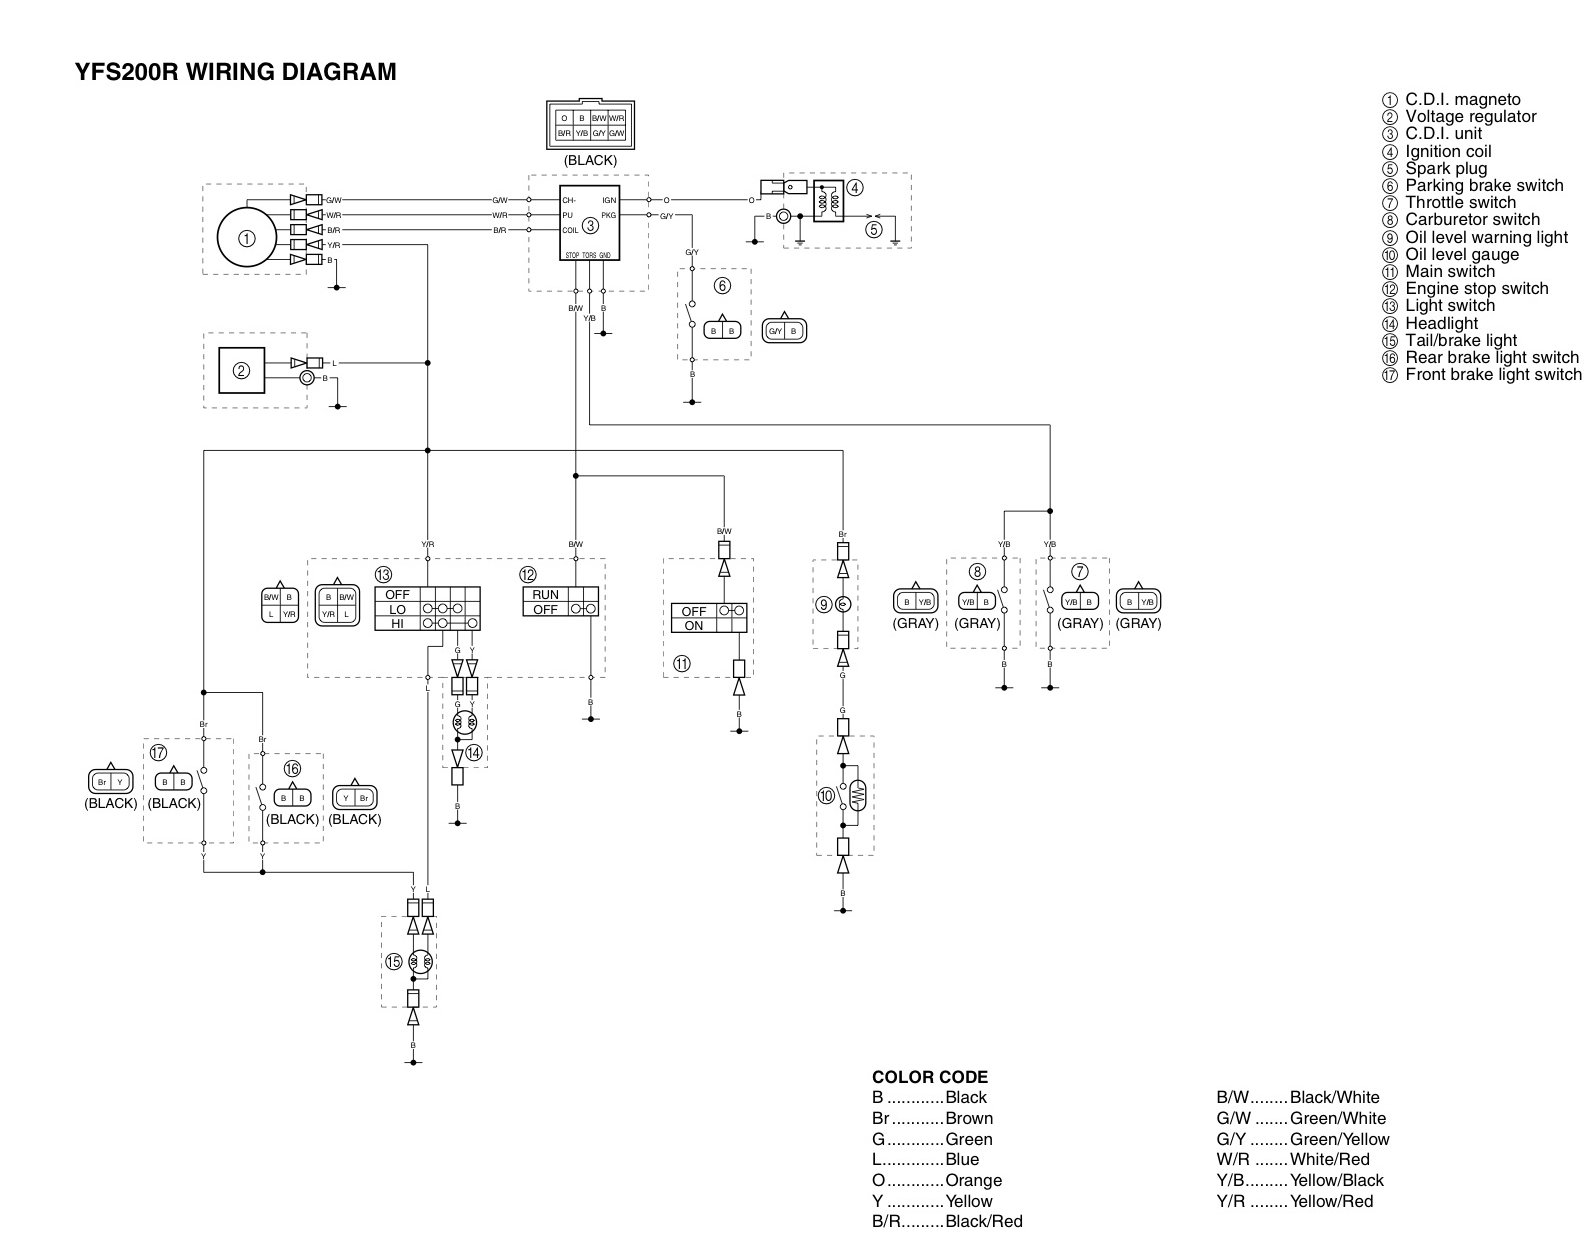 1998 200 Yamaha Blaster Wiring Diagram - Race Car Wiring Diagrams for Wiring  Diagram Schematics | 1998 200 Yamaha Blaster Wiring Diagram |  | Wiring Diagram Schematics